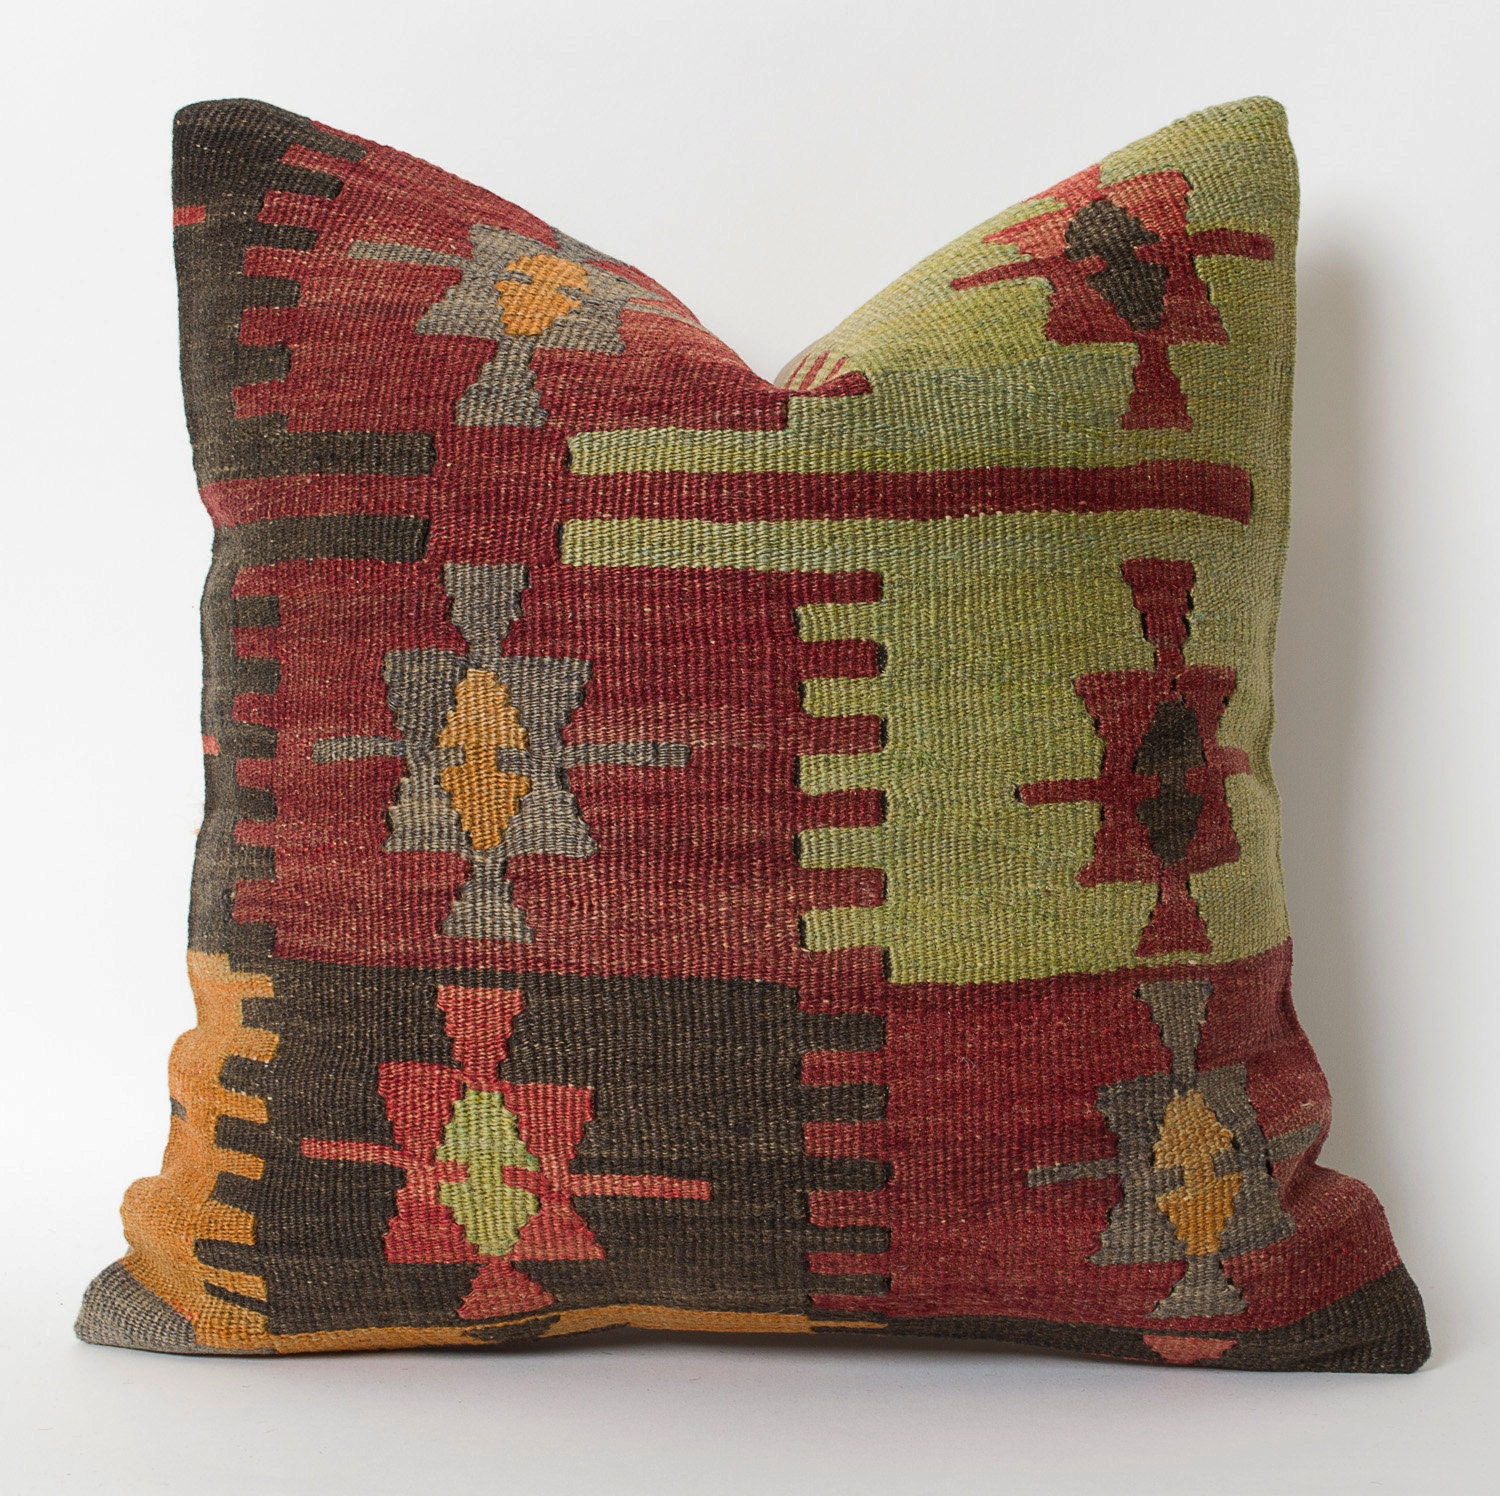 Modern Bohemian Throw Pillow Cover Handwoven Vintage Tribal